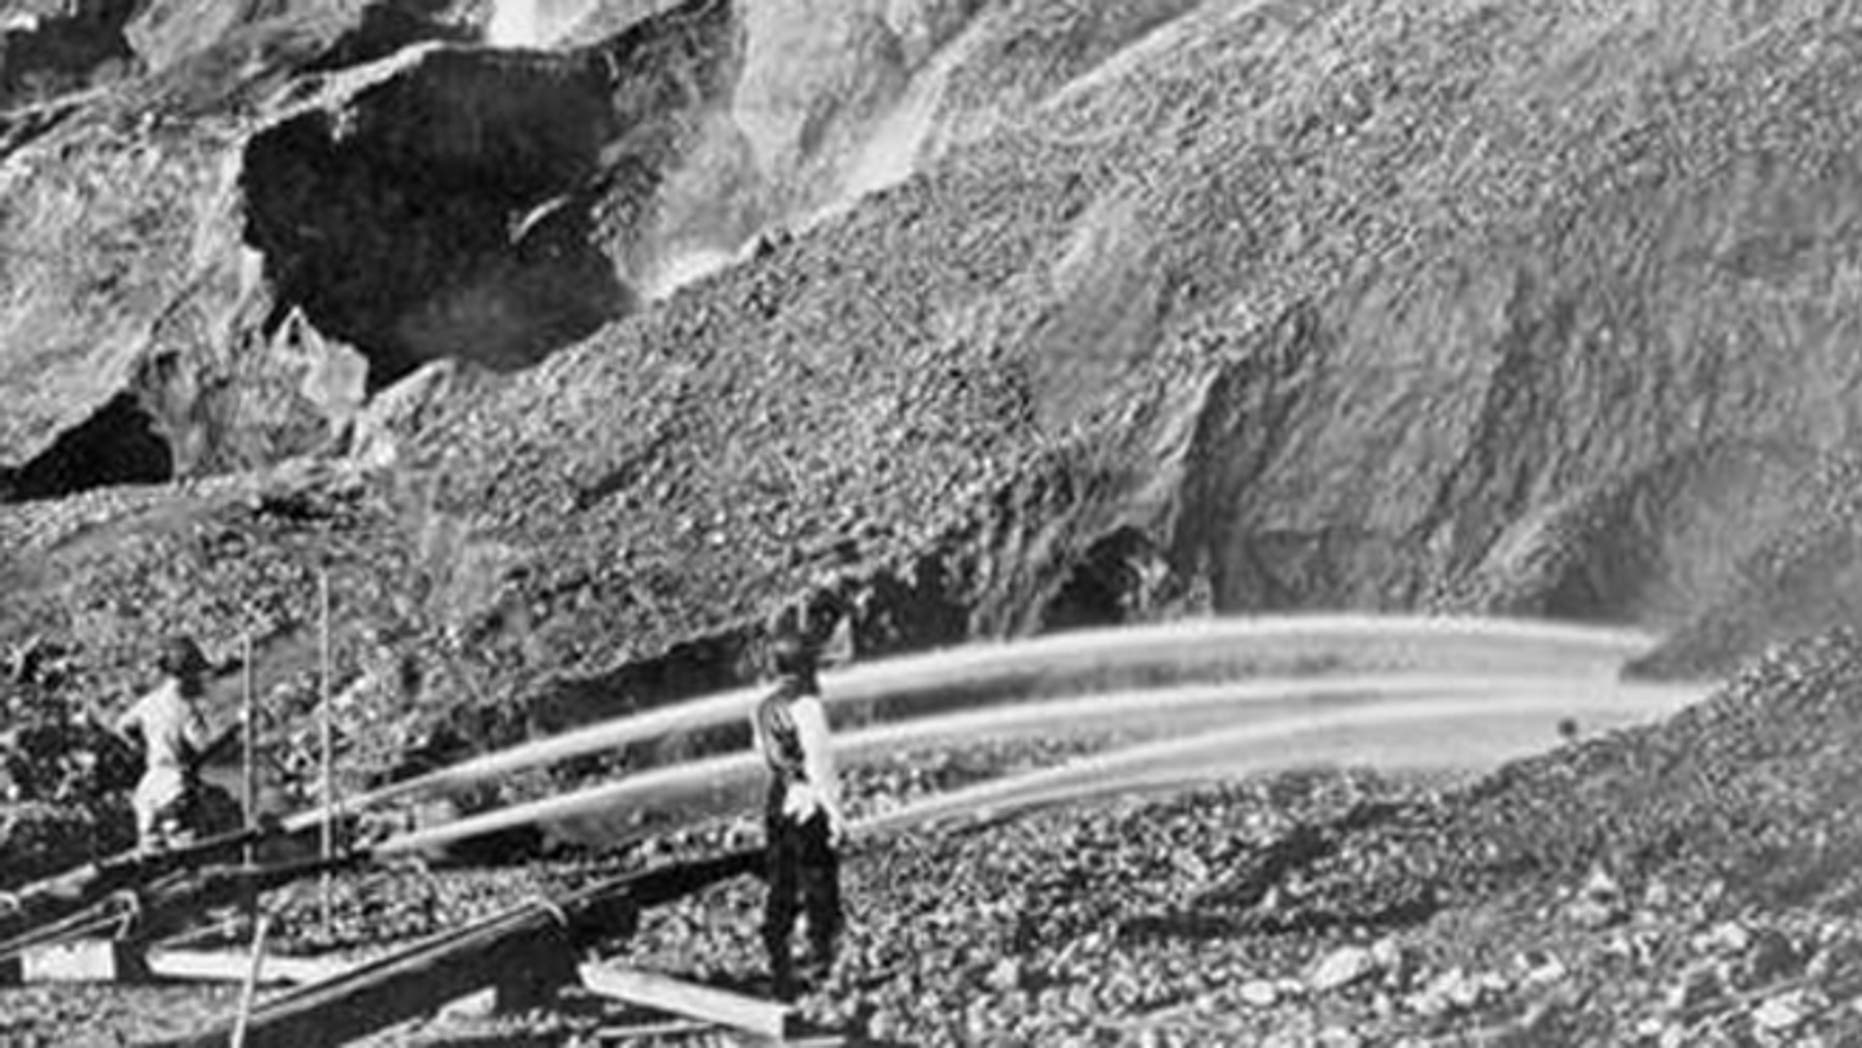 View of gold miners excavating an eroded bluff with jets of water at a placer mine in Dutch Flat, California, between 1857 and 1870.